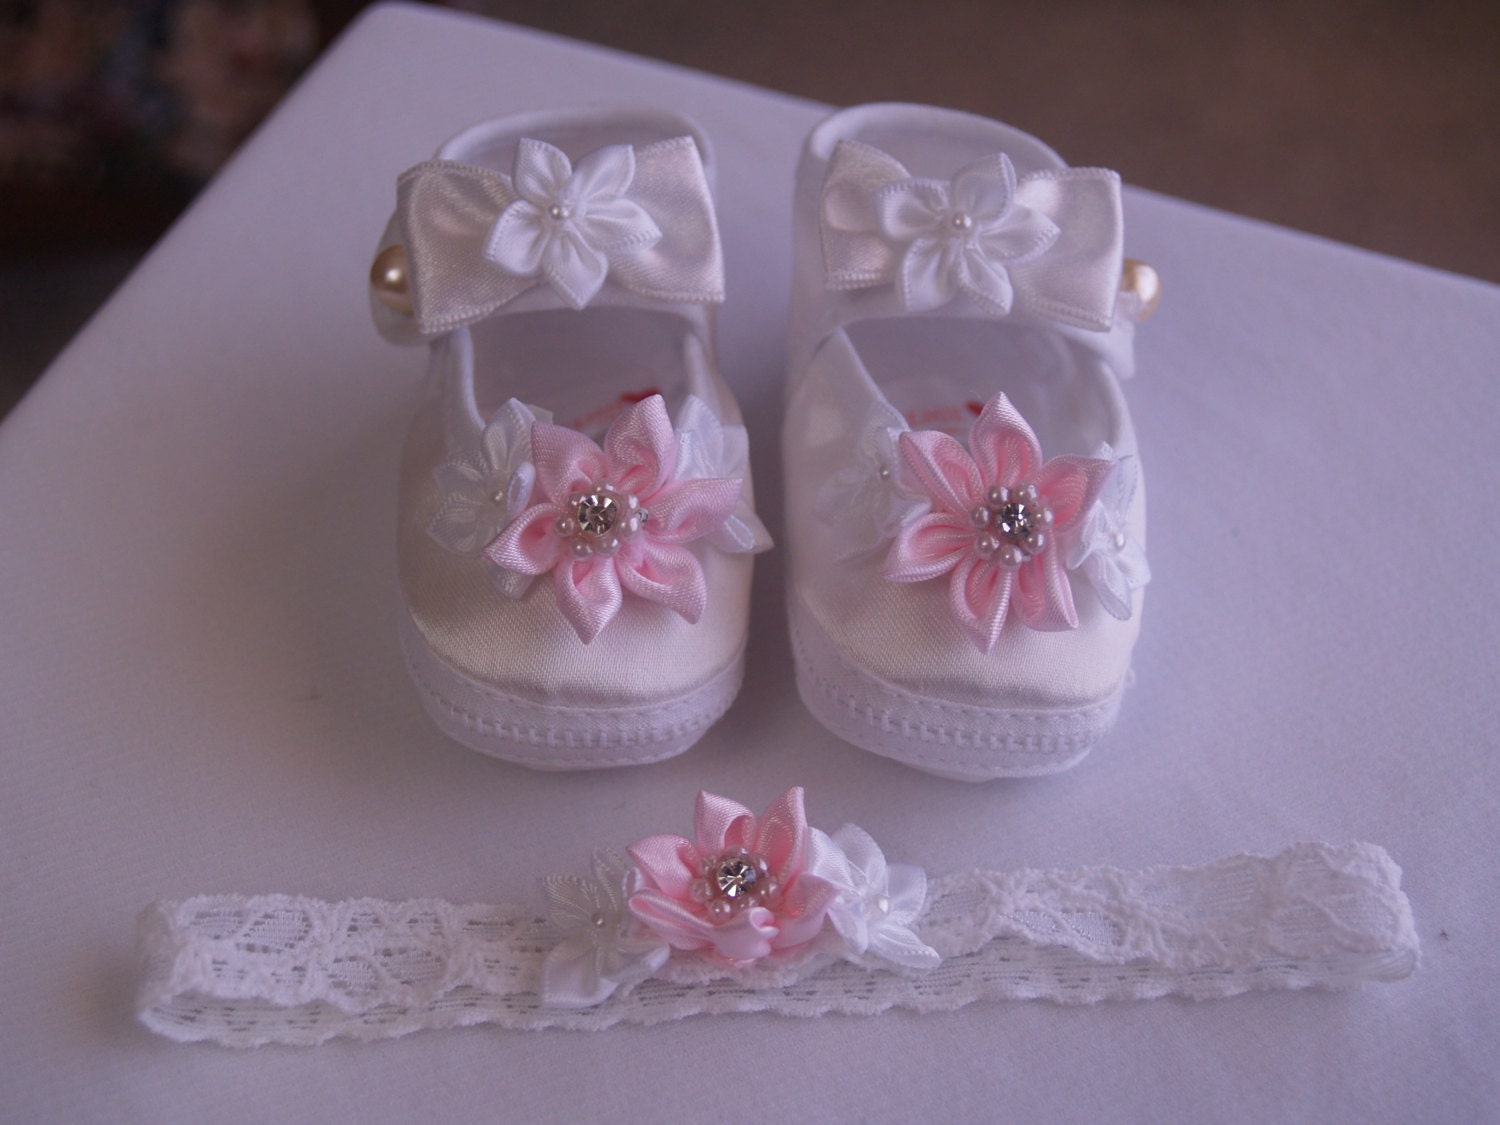 Find great deals on eBay for premature baby shoes. Shop with confidence.